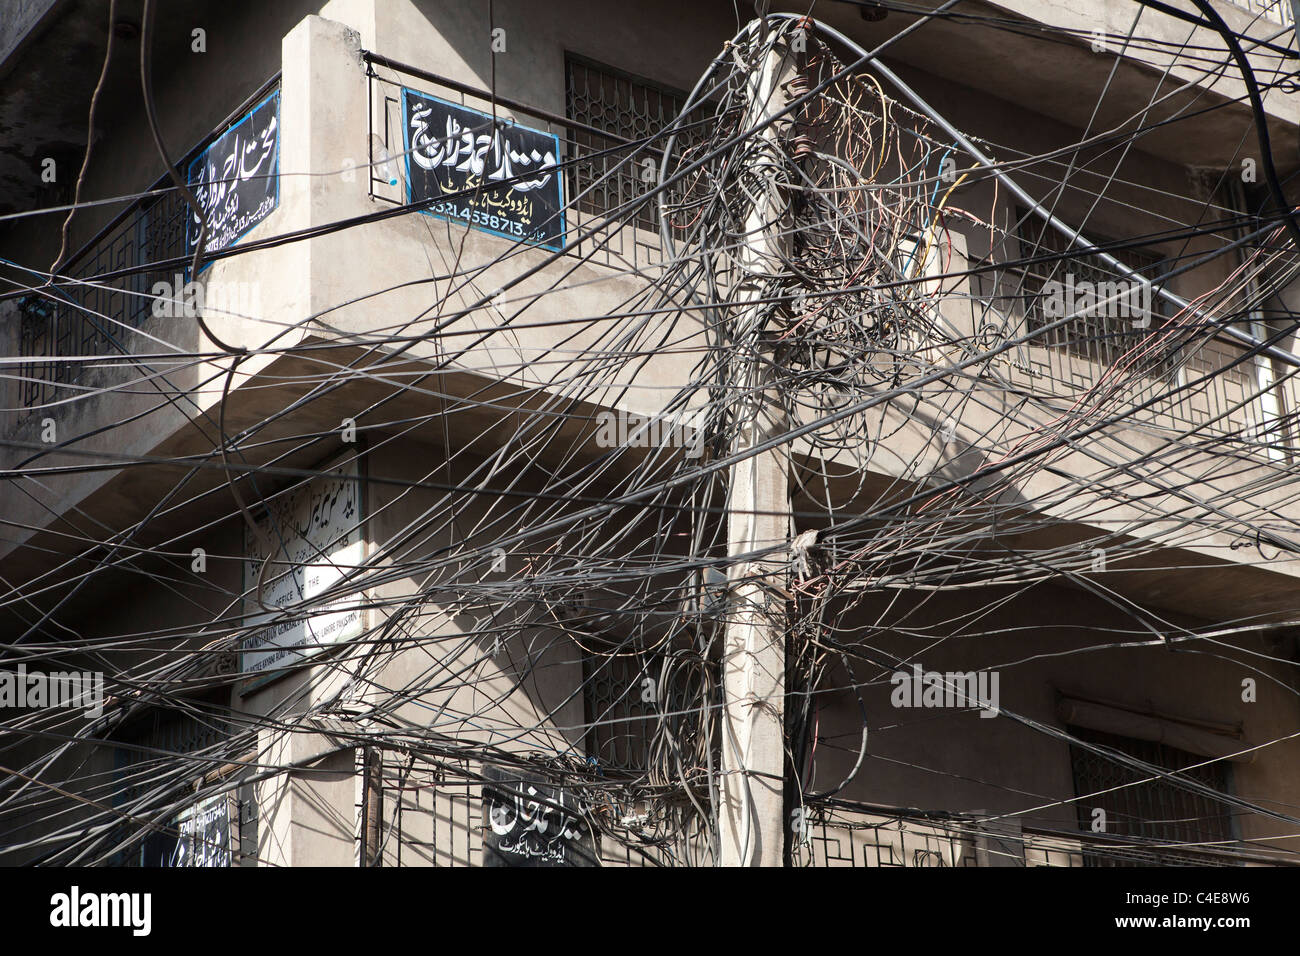 Electricity Wires Mess In Stock Photos & Electricity Wires Mess In ...